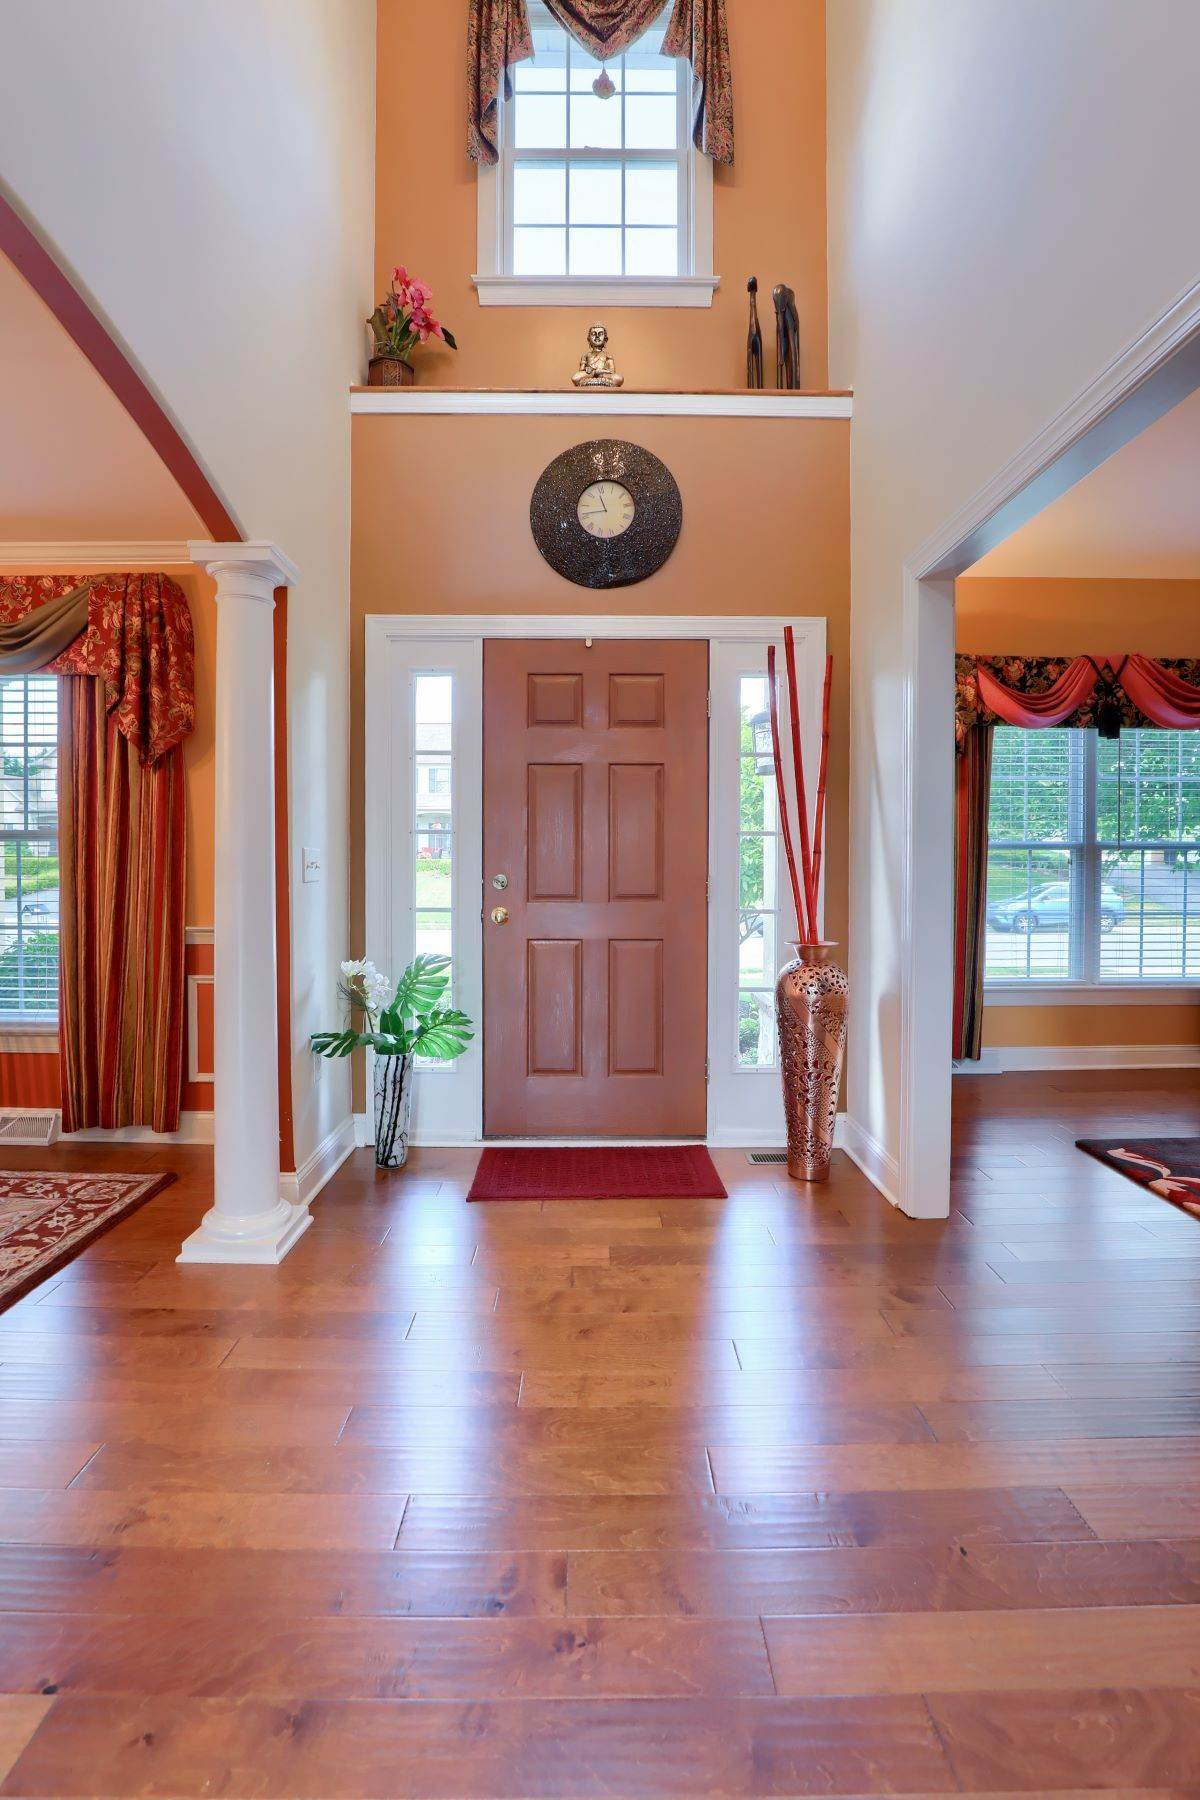 5. Single Family Homes for Sale at 18 Jared Place Lititz, Pennsylvania 17543 United States